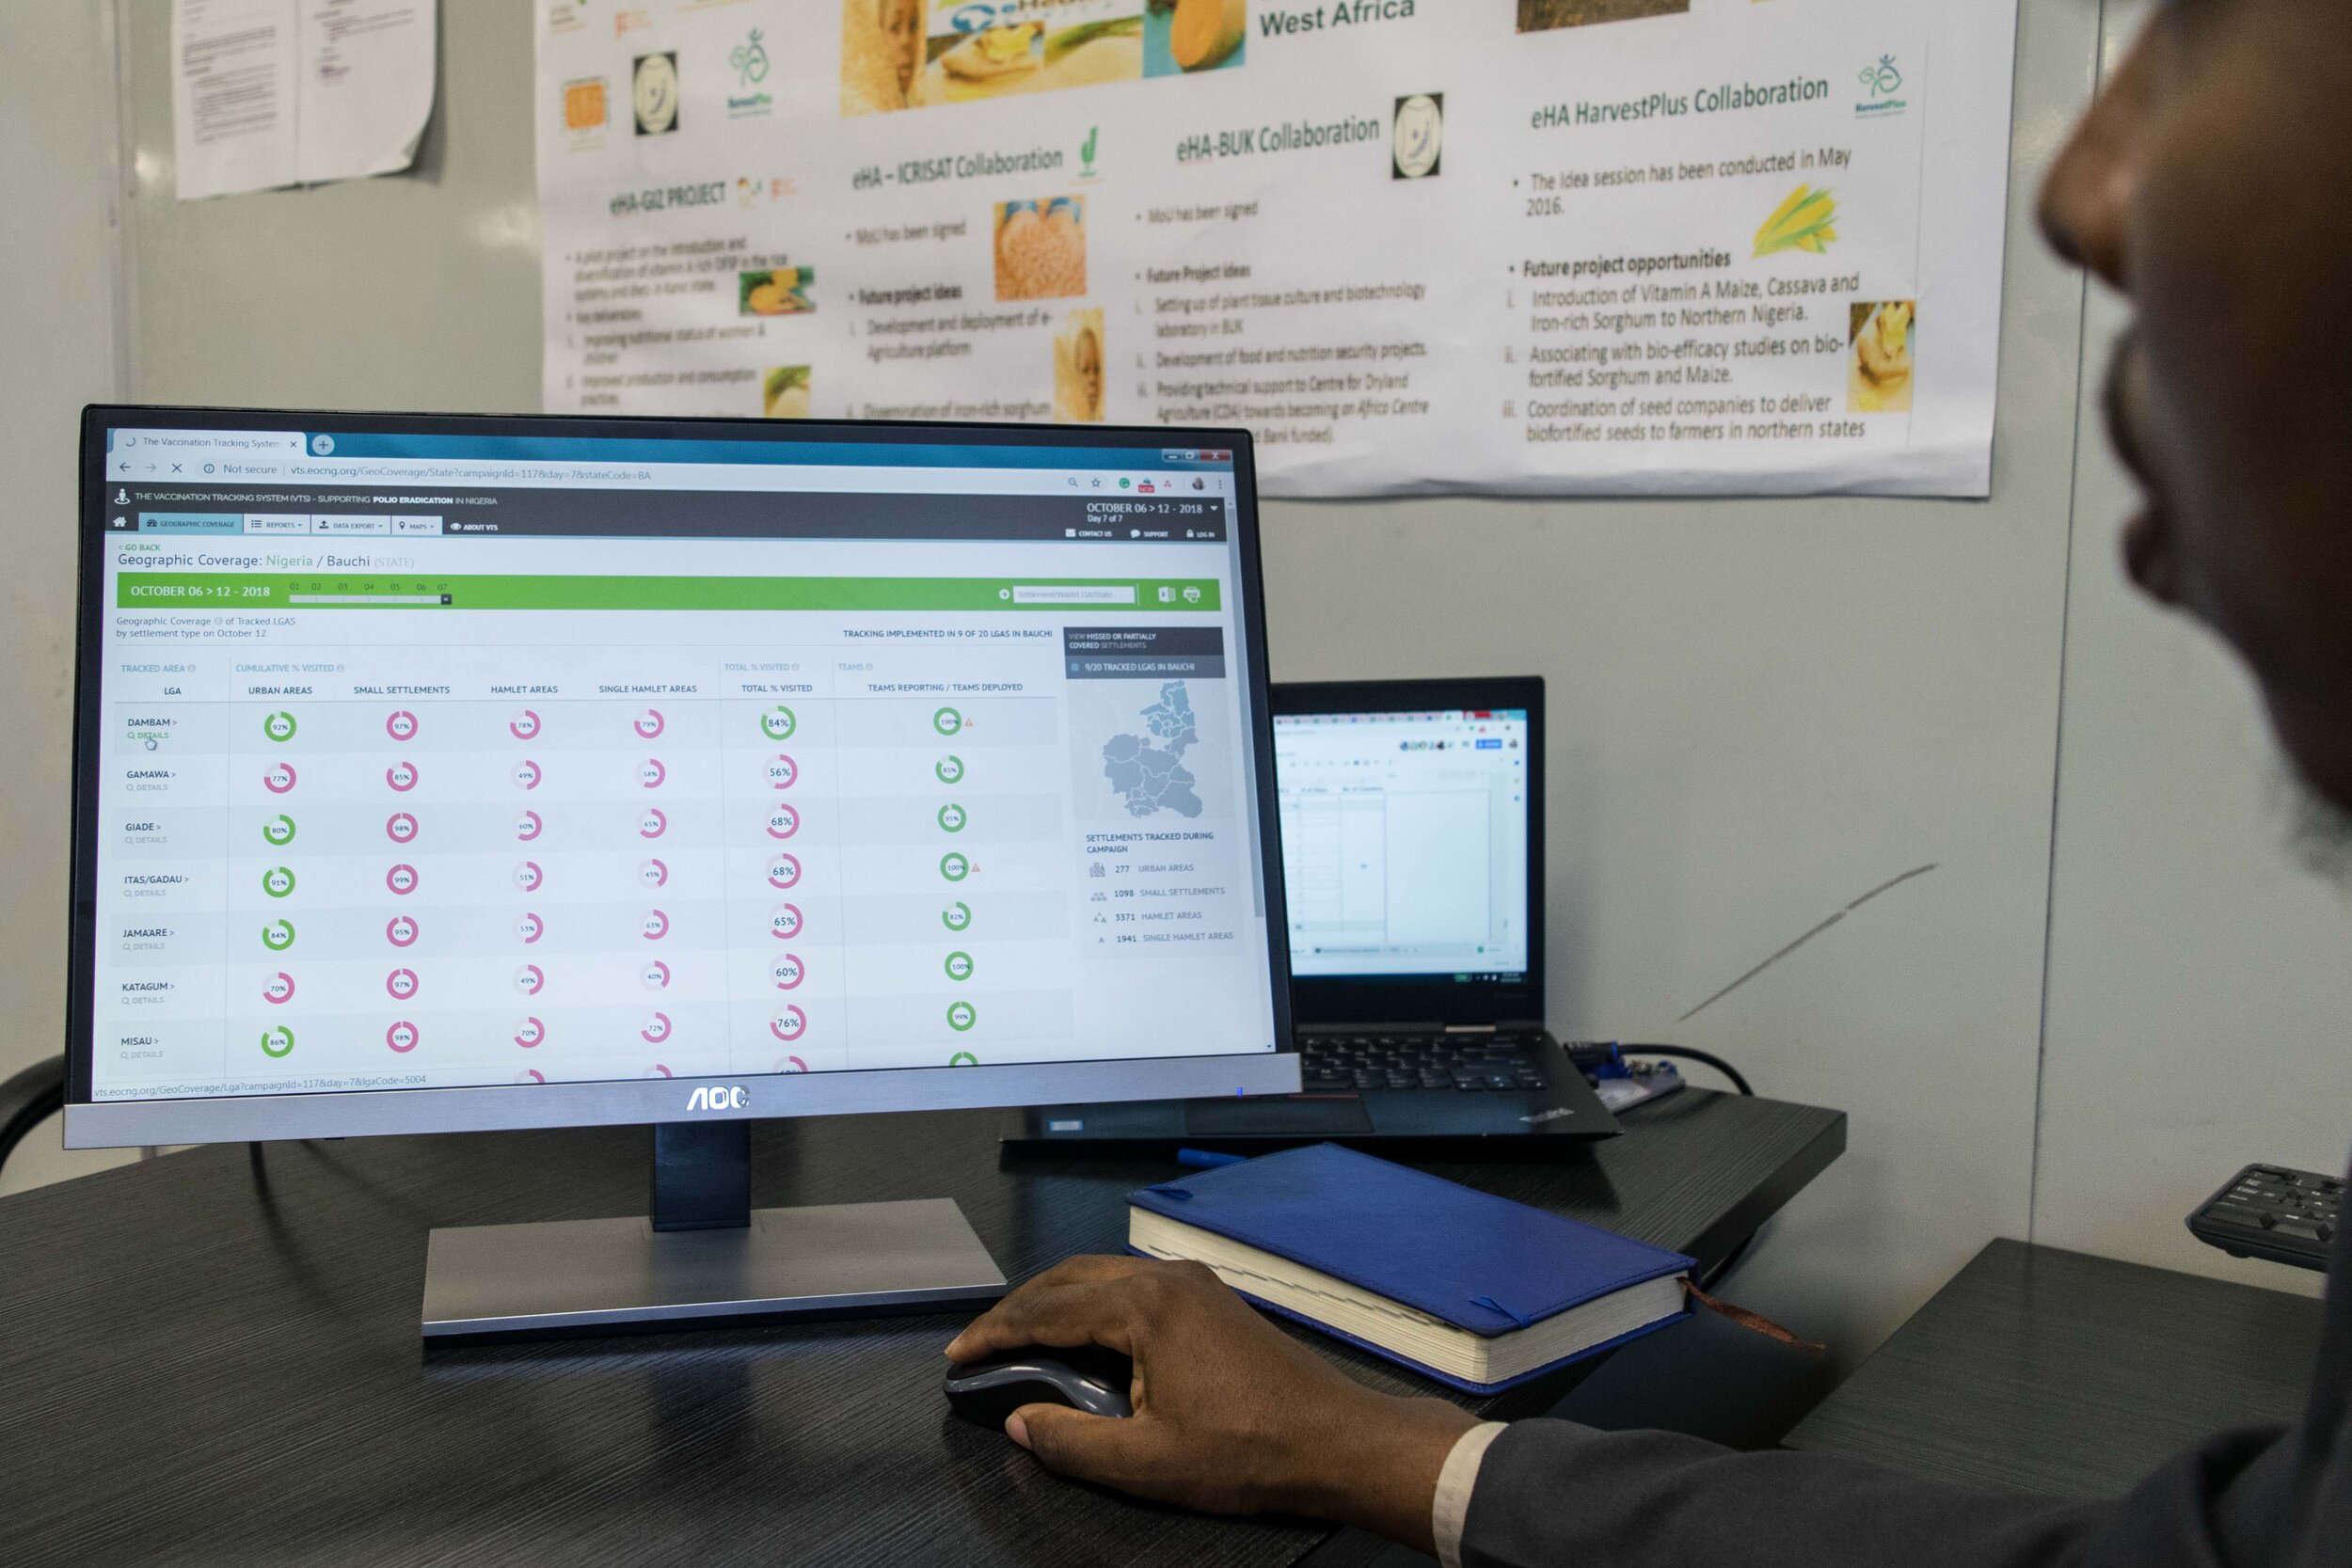 The VTS dashboard provides decision-makers with near-real-time data about the progress of immunization campaigns and outreaches